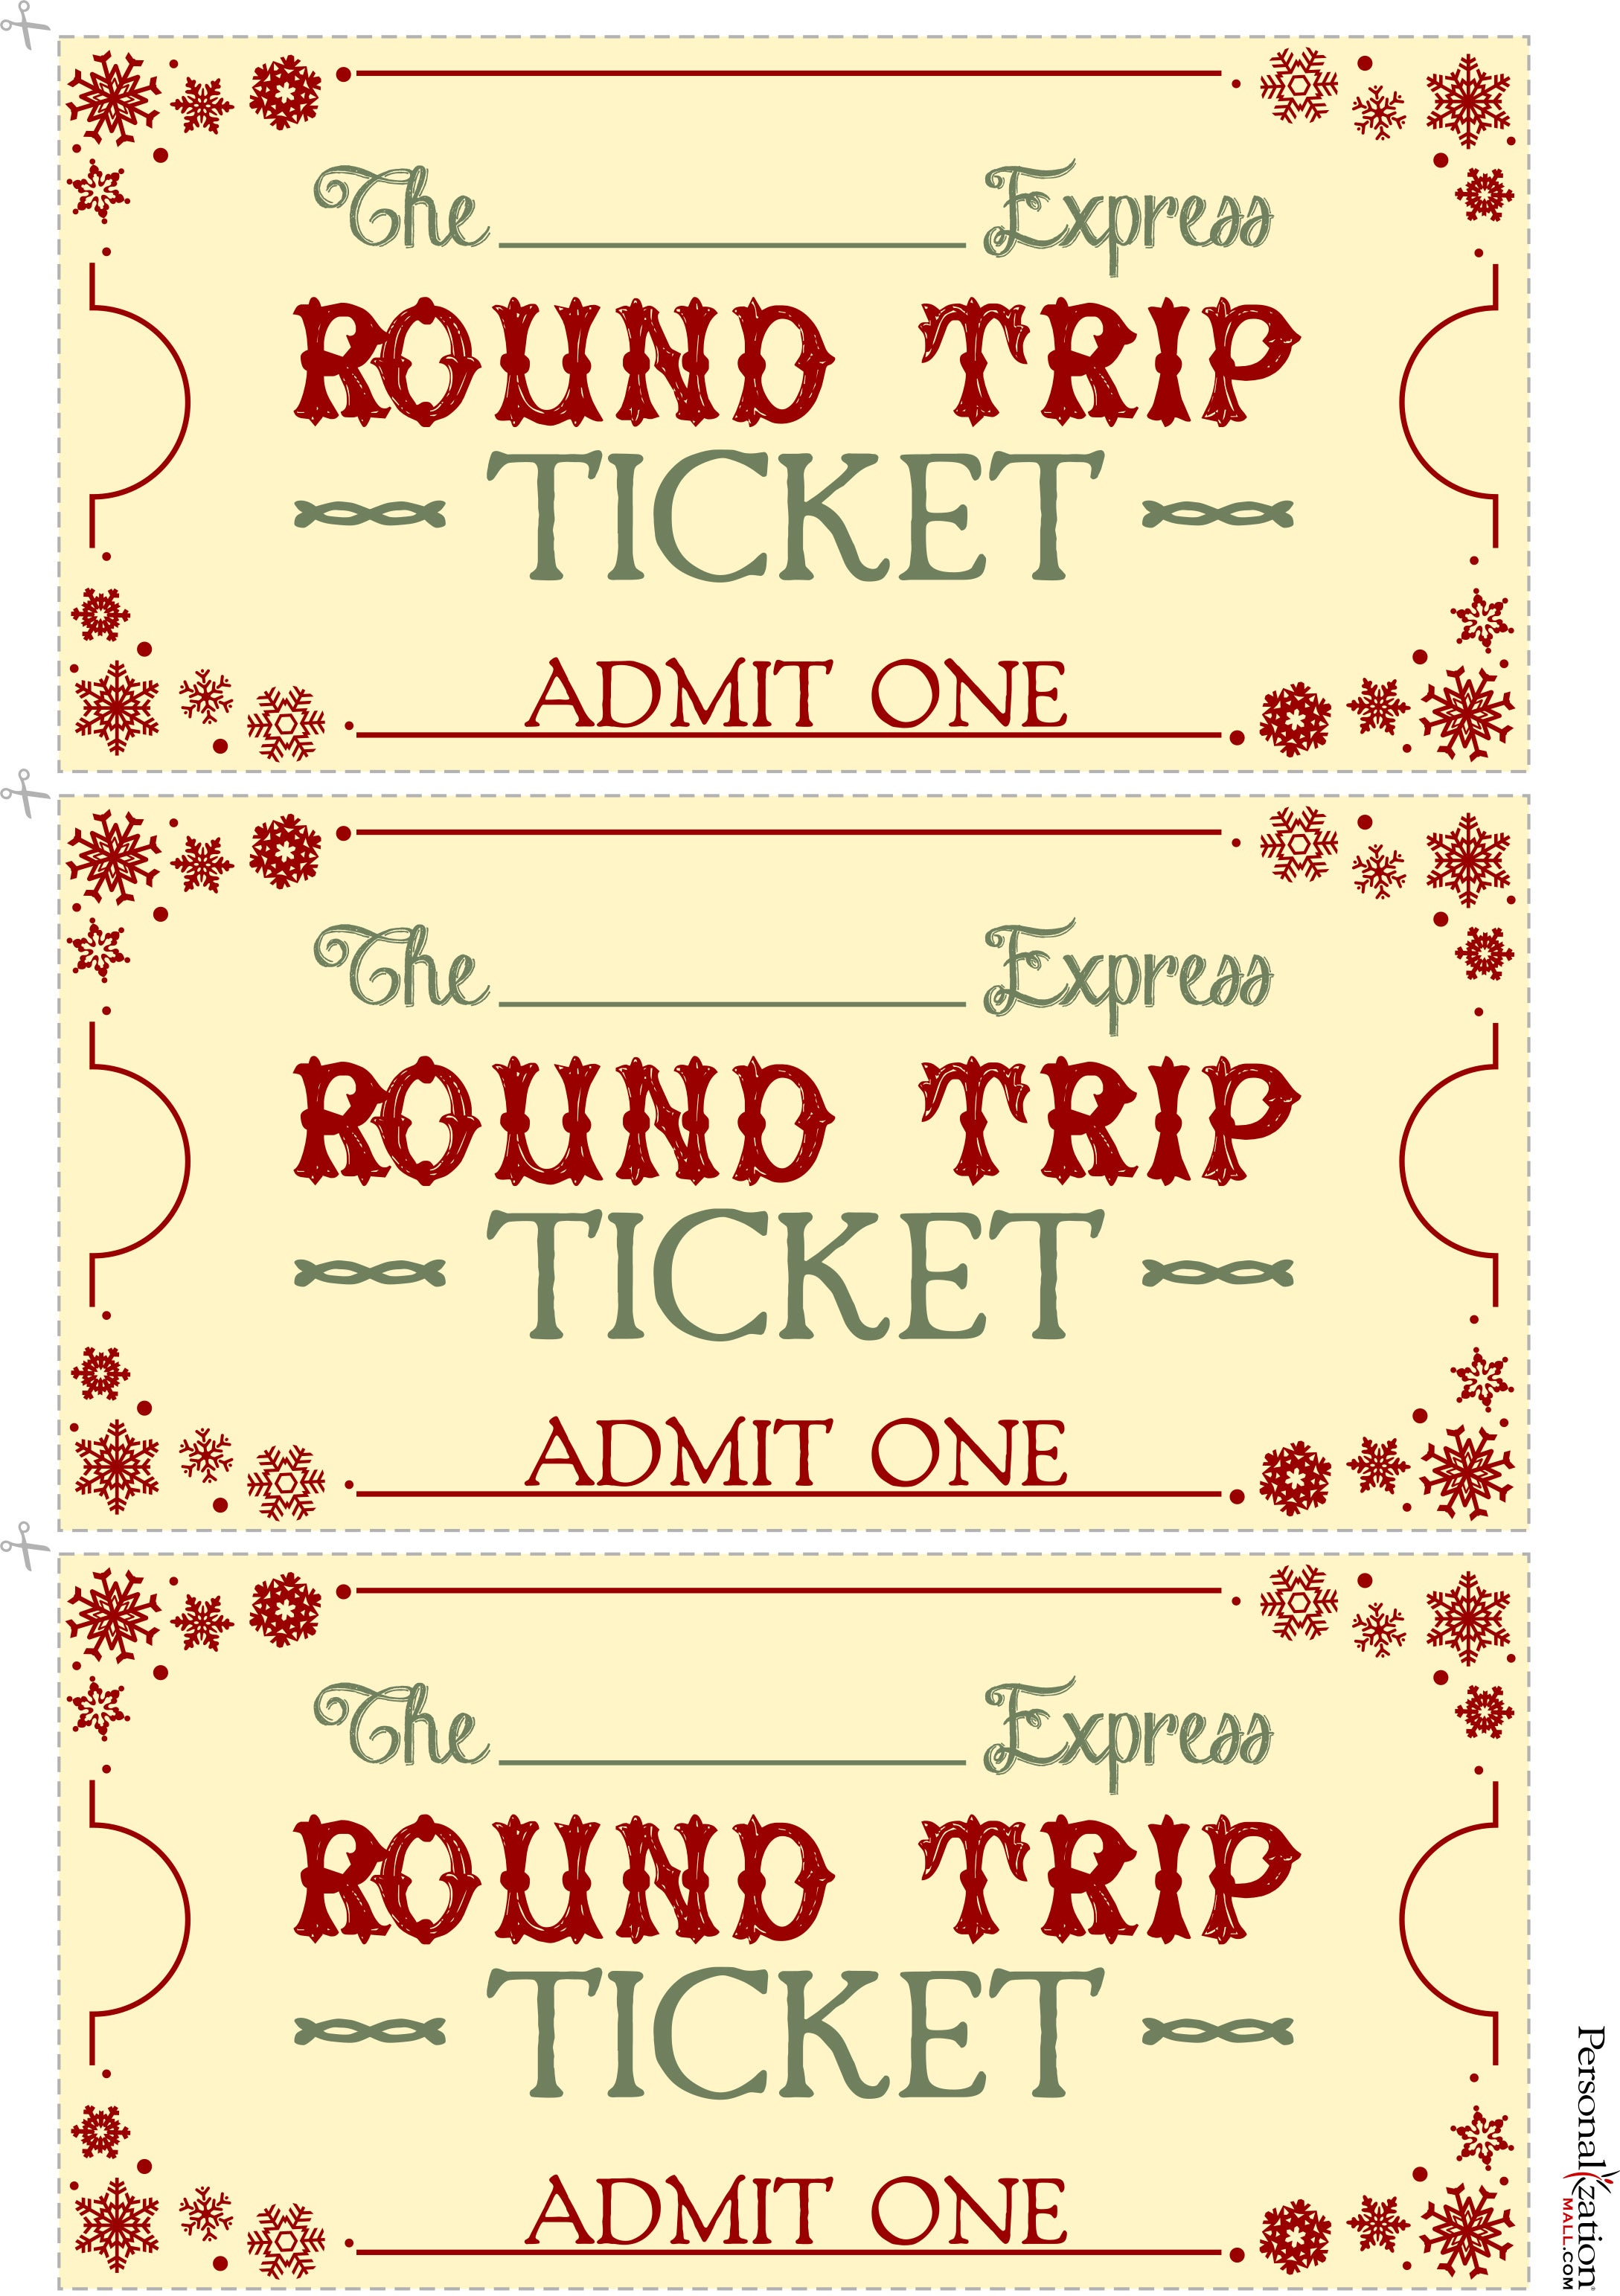 Polar Express Tickets Template Printable Free | New Calendar Template ...